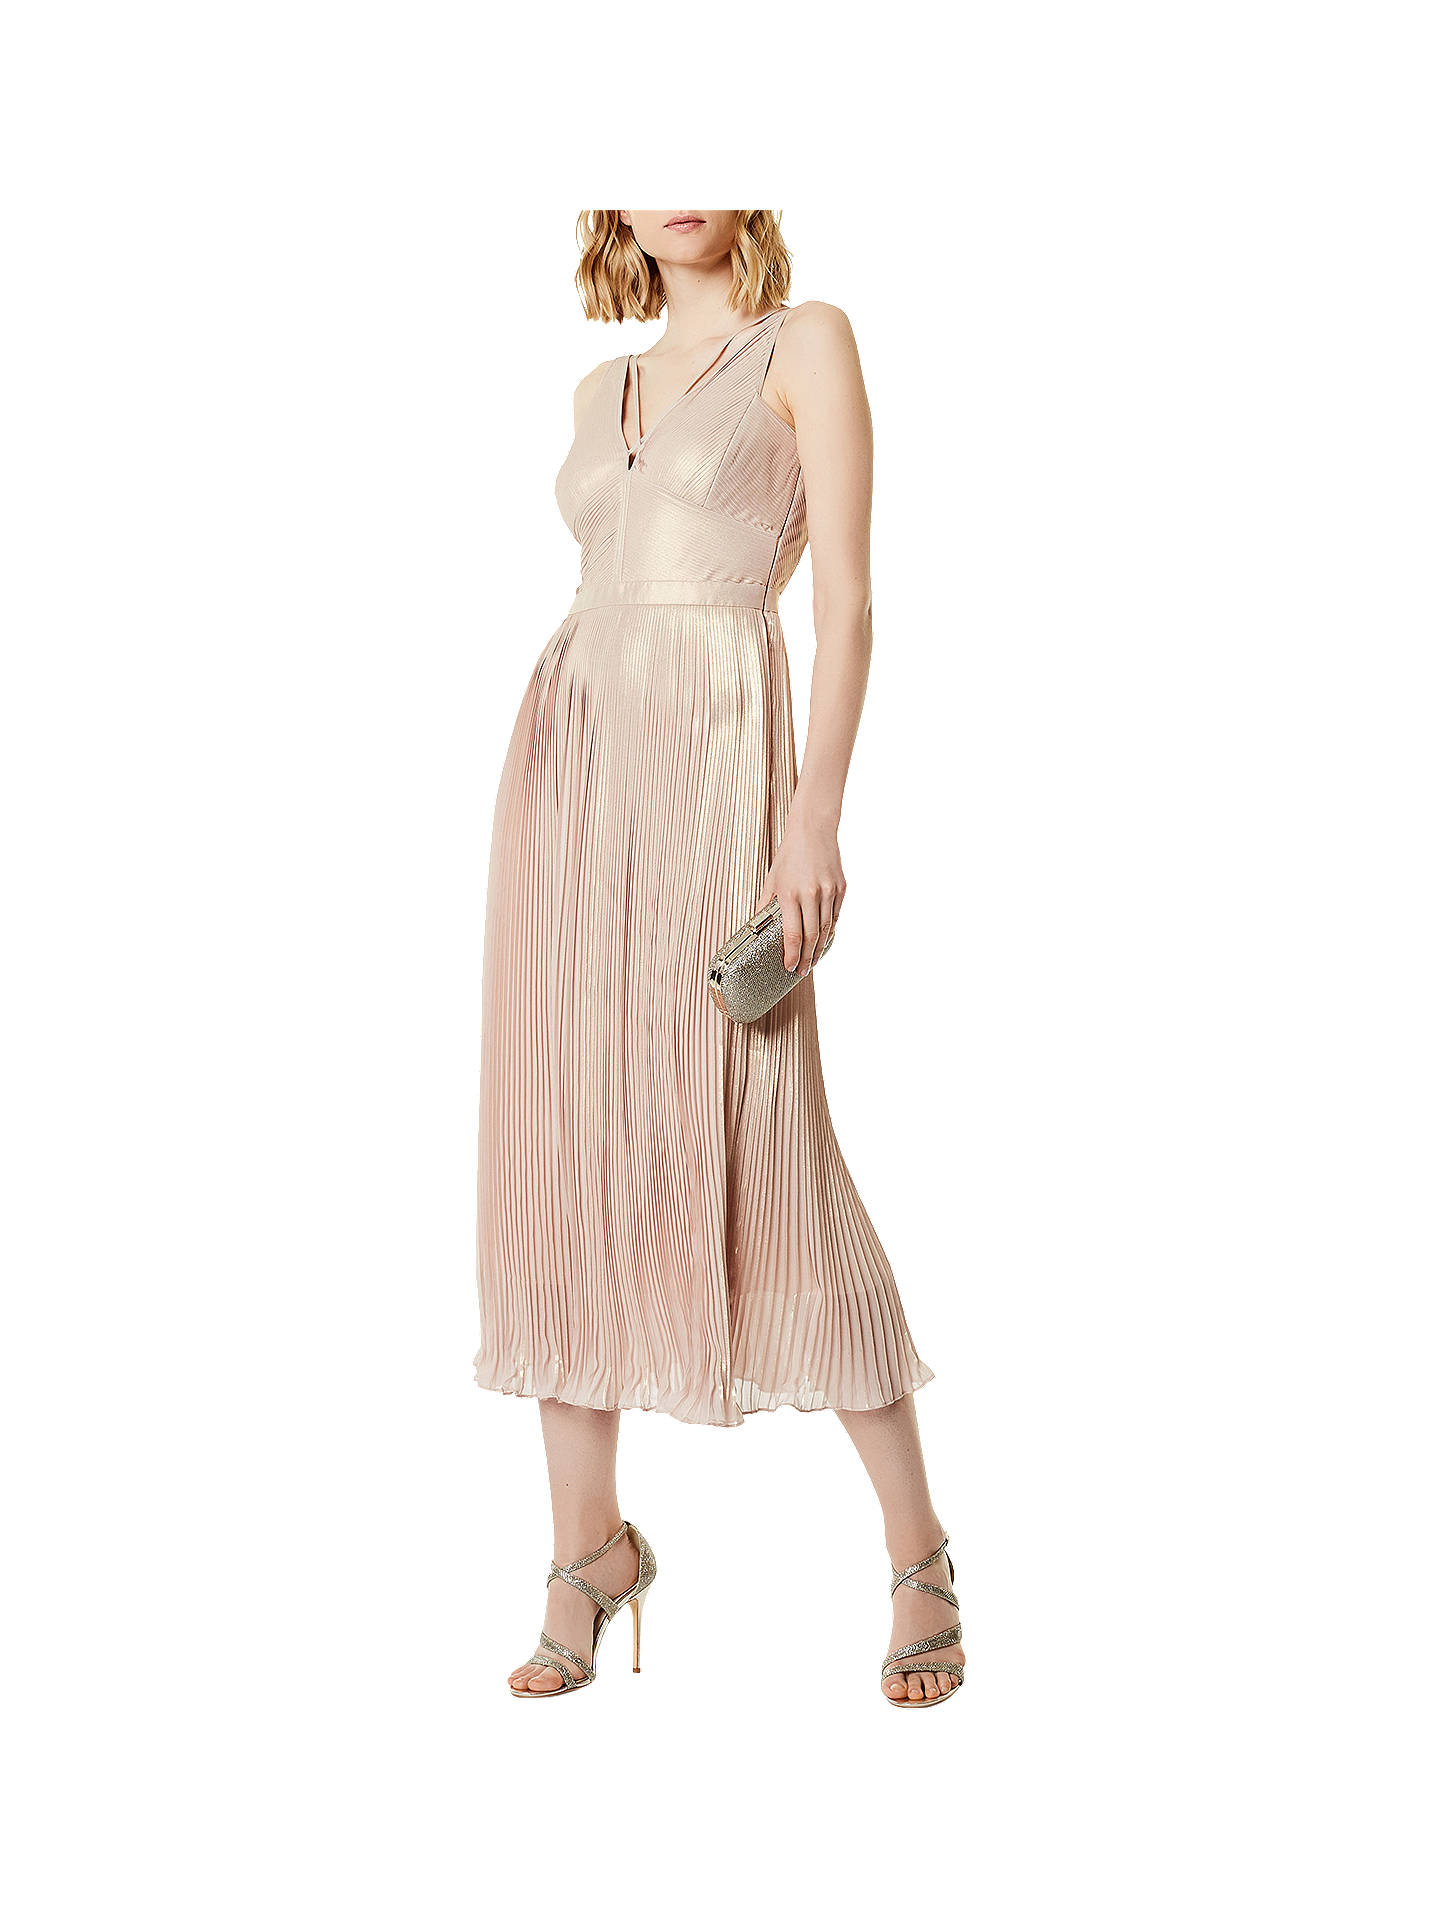 cdca94bba9 View All Women s Dresses. Previous Image Next Image. BuyKaren Millen Metallic  Pleat Midi Dress